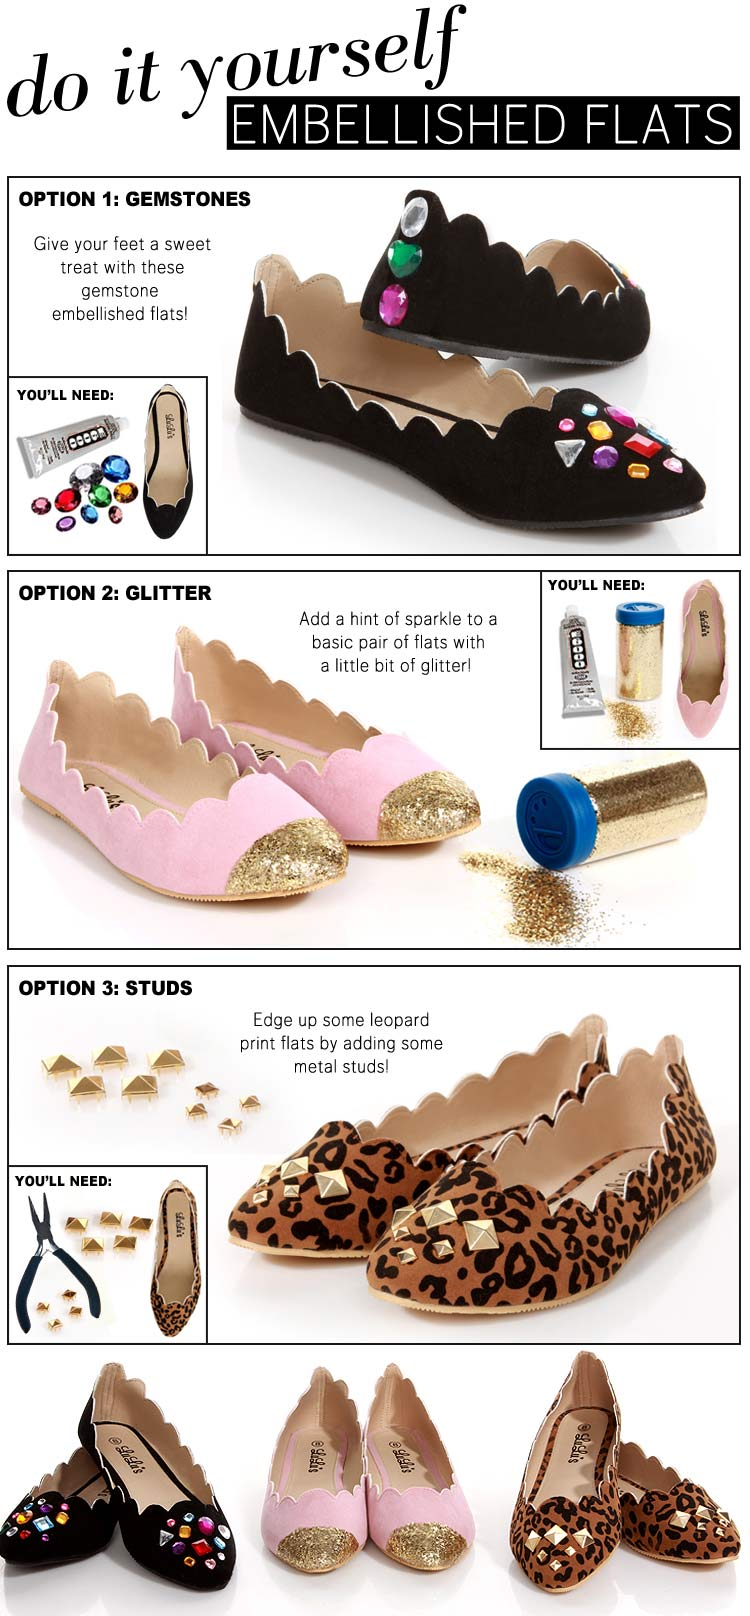 Do it yourself fashionable ideas diyshoes2 solutioingenieria Gallery